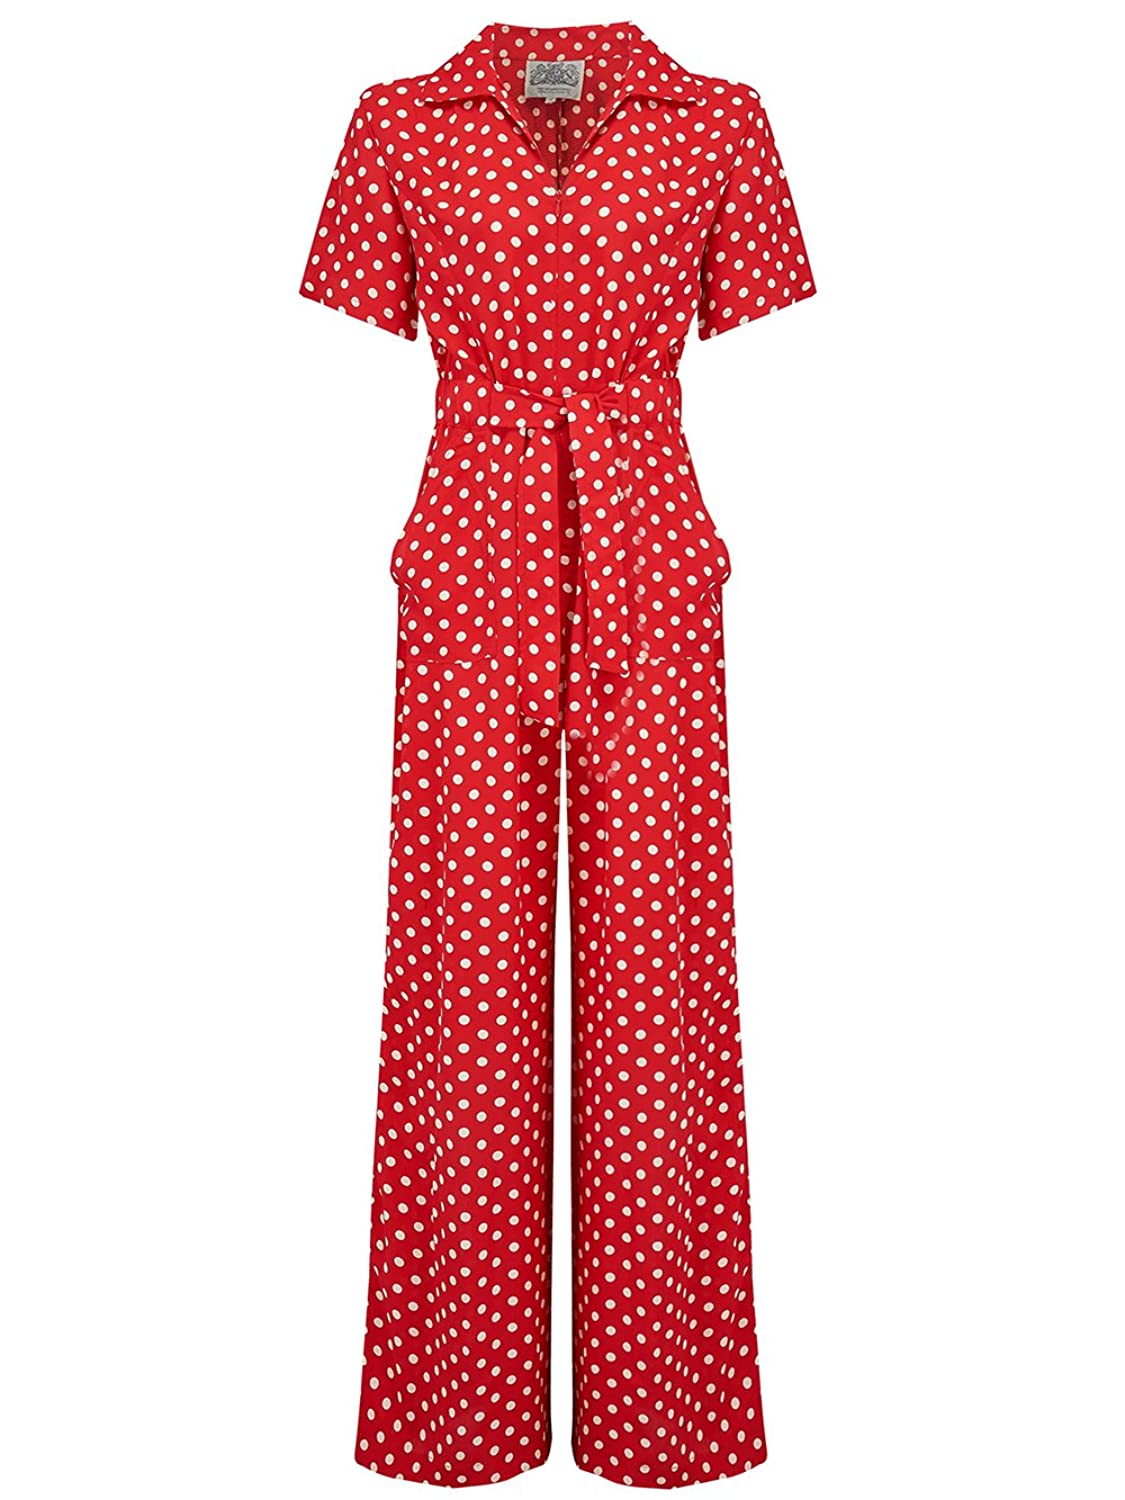 Agent Peggy Carter Costume, Dress, Hats 1940s Vintage Inspired Lauren jumpsuit in Red Spot by The Seamstress of Bloomsbury £89.00 AT vintagedancer.com